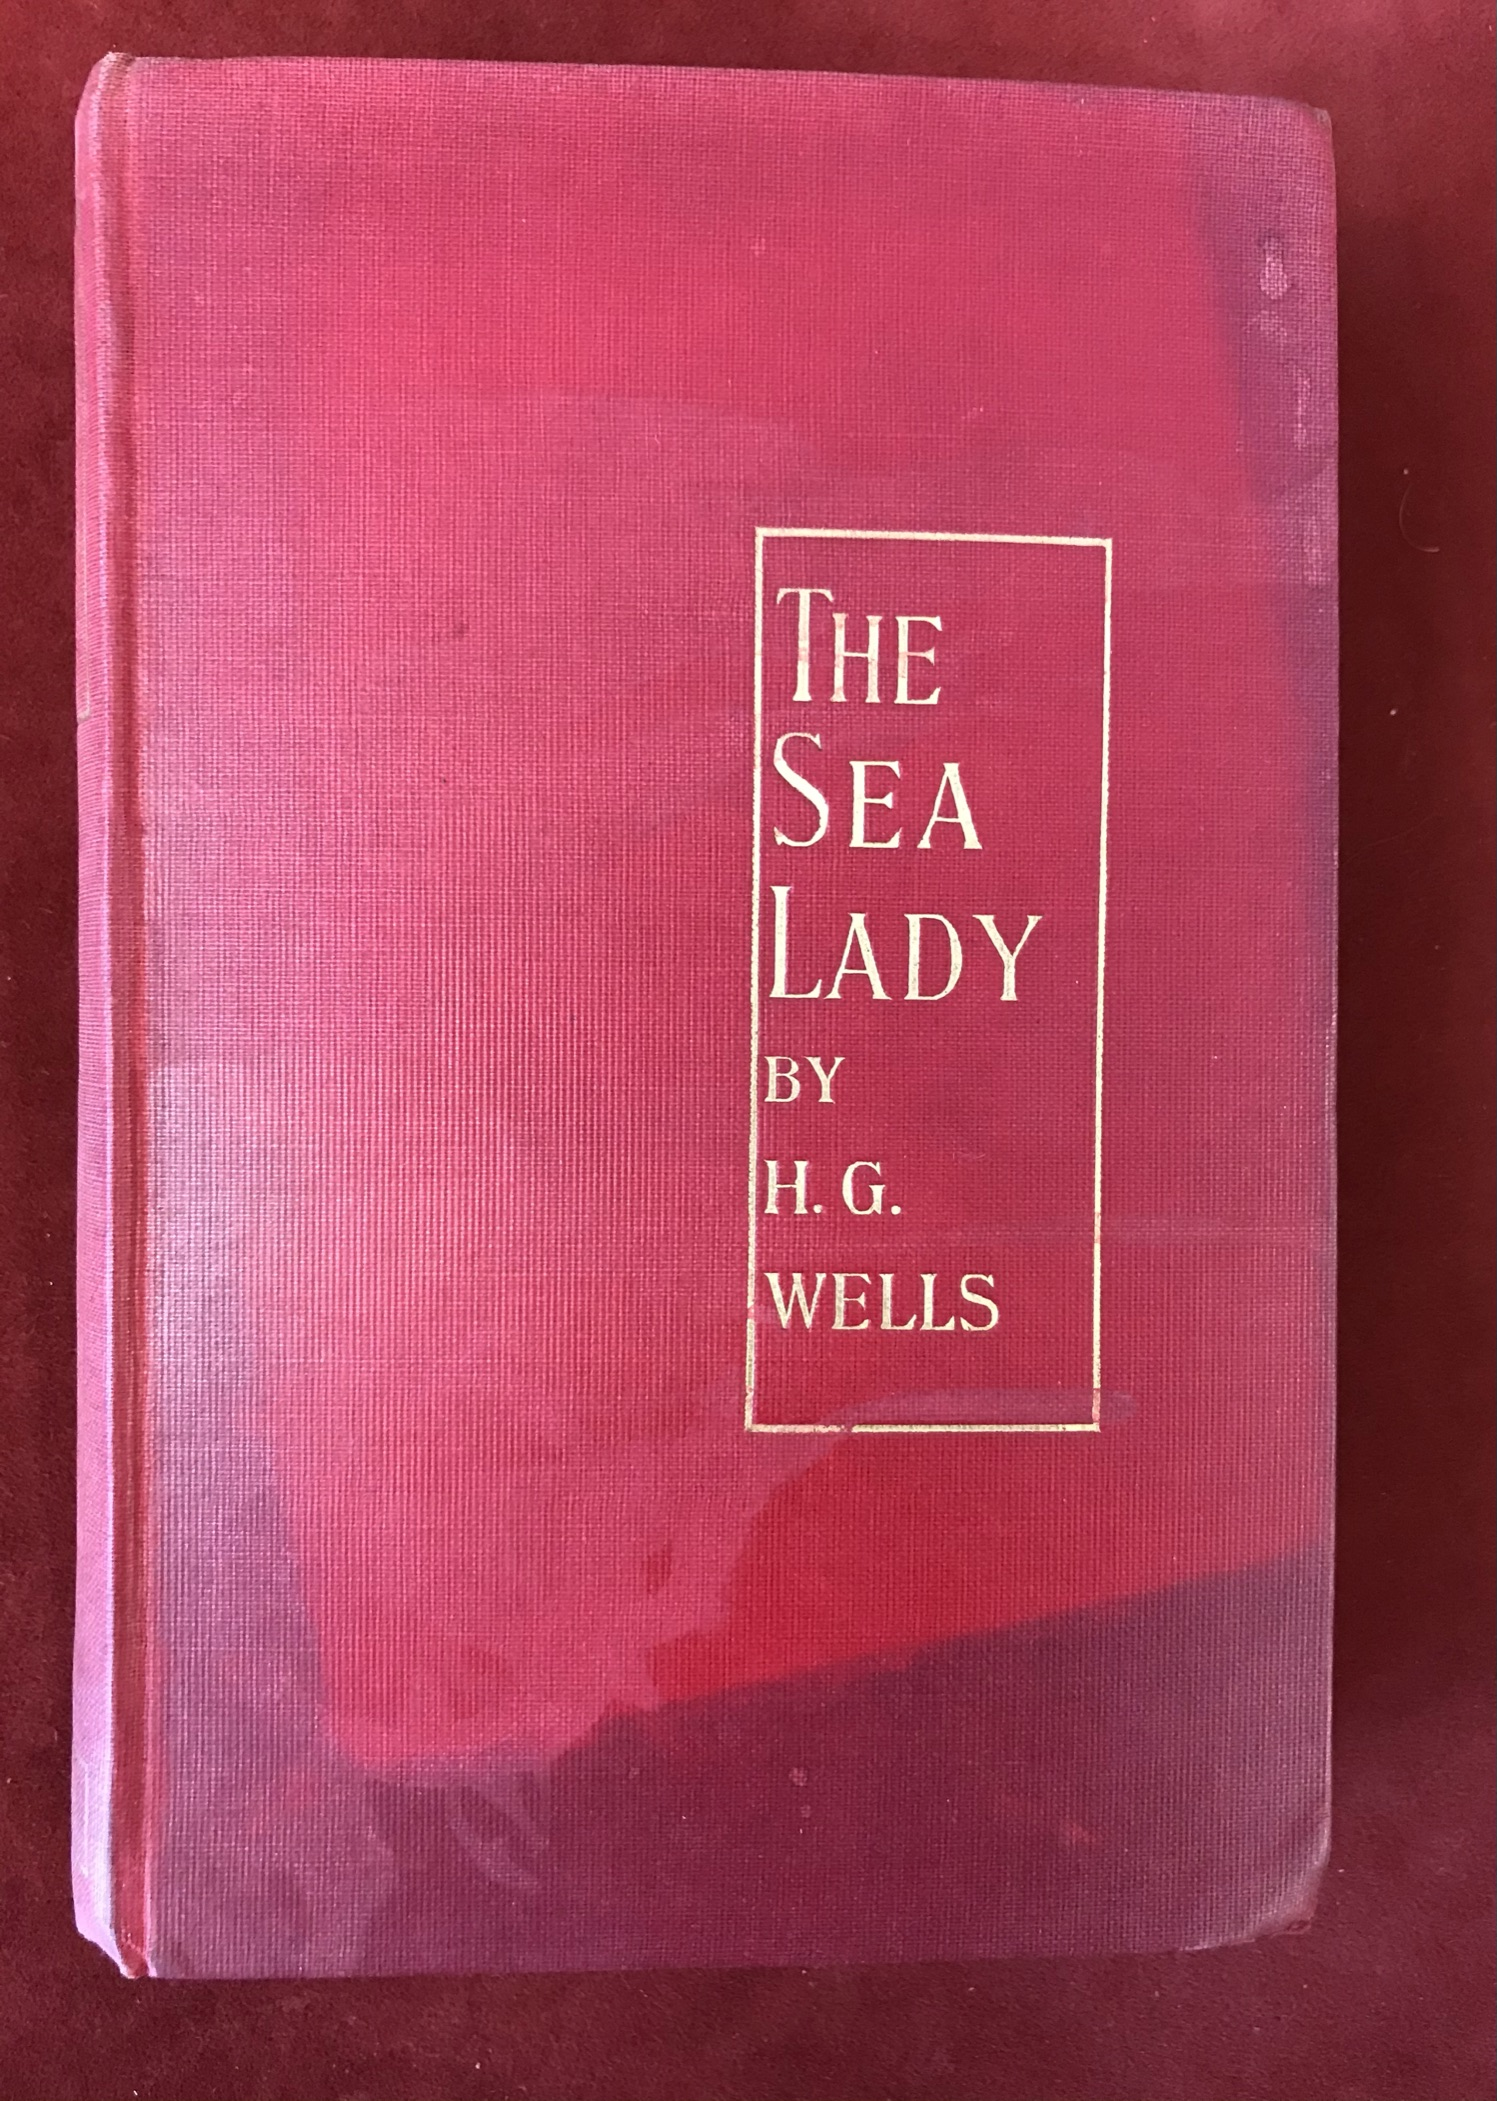 The Sea Ladyby H.G. Wells, First edition, 'later issue' 1902